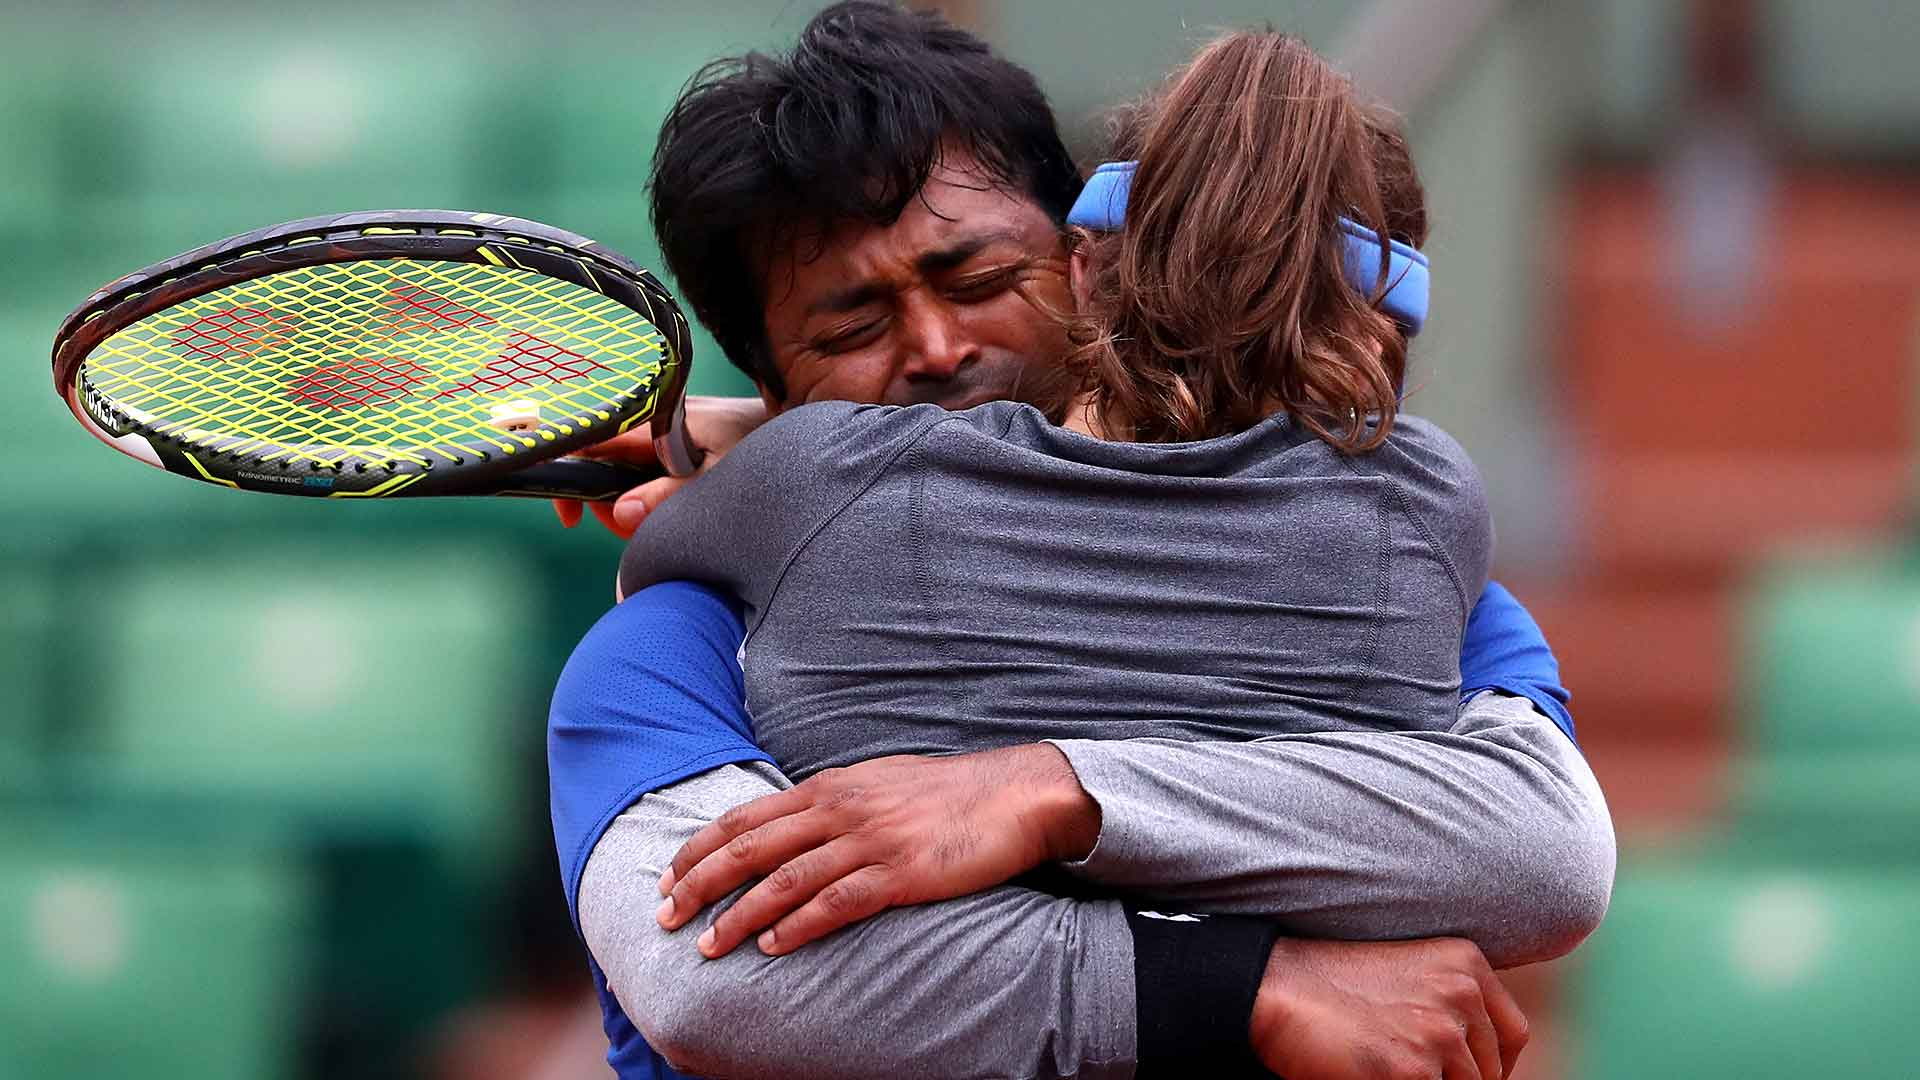 Leander Paes teams up with Martina Hingis to capture the Roland Garros mixed doubles title.